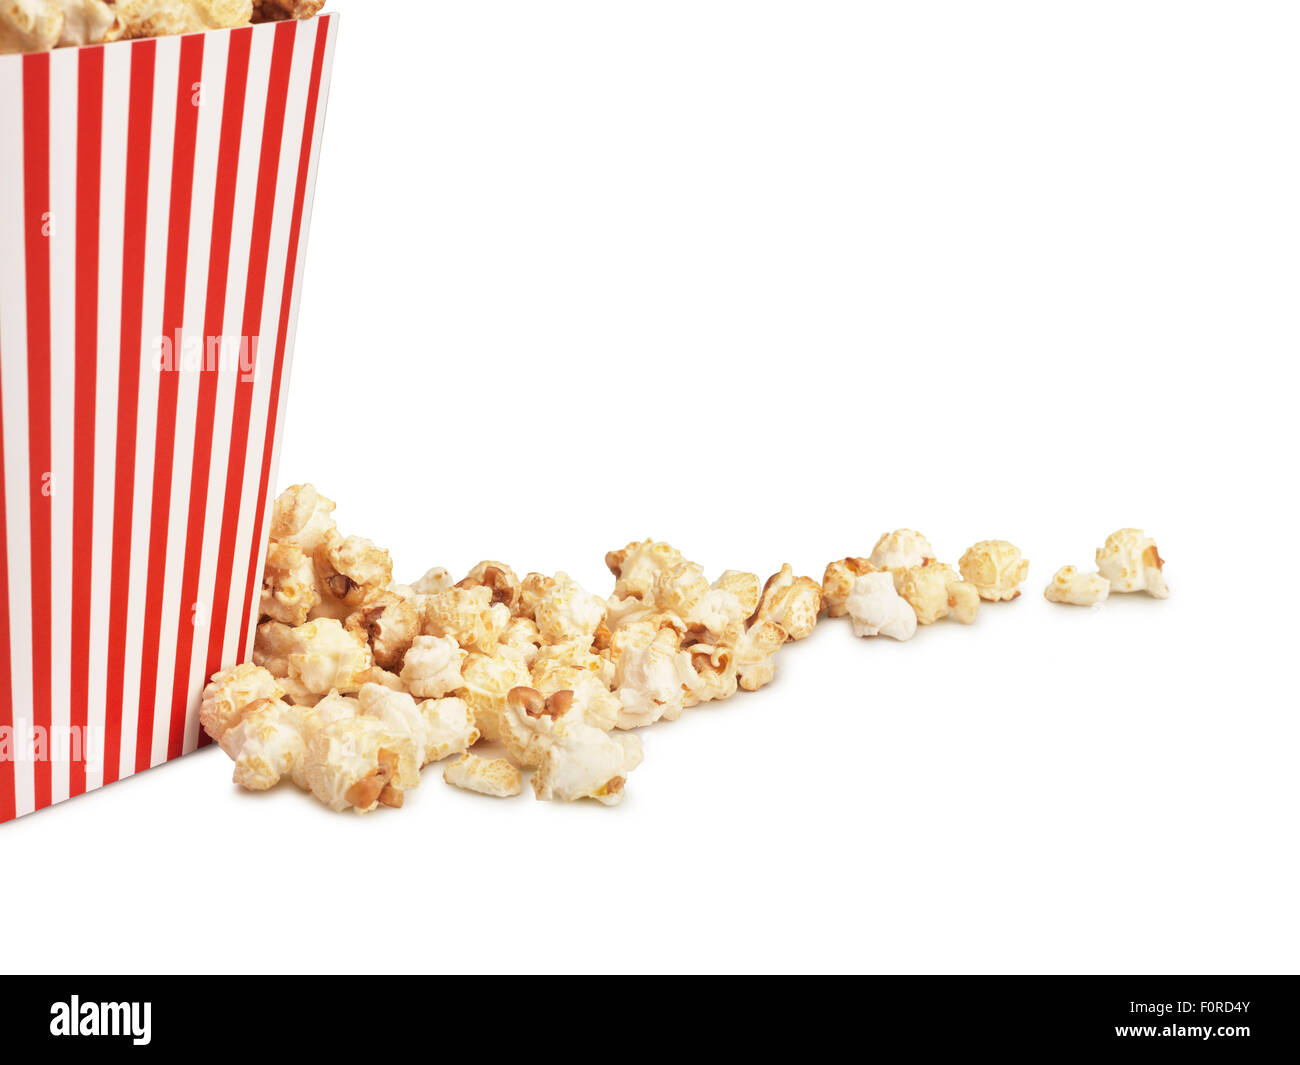 shot of cinema style popcorn in box on a white background with copy space for the designer. Stock Photo